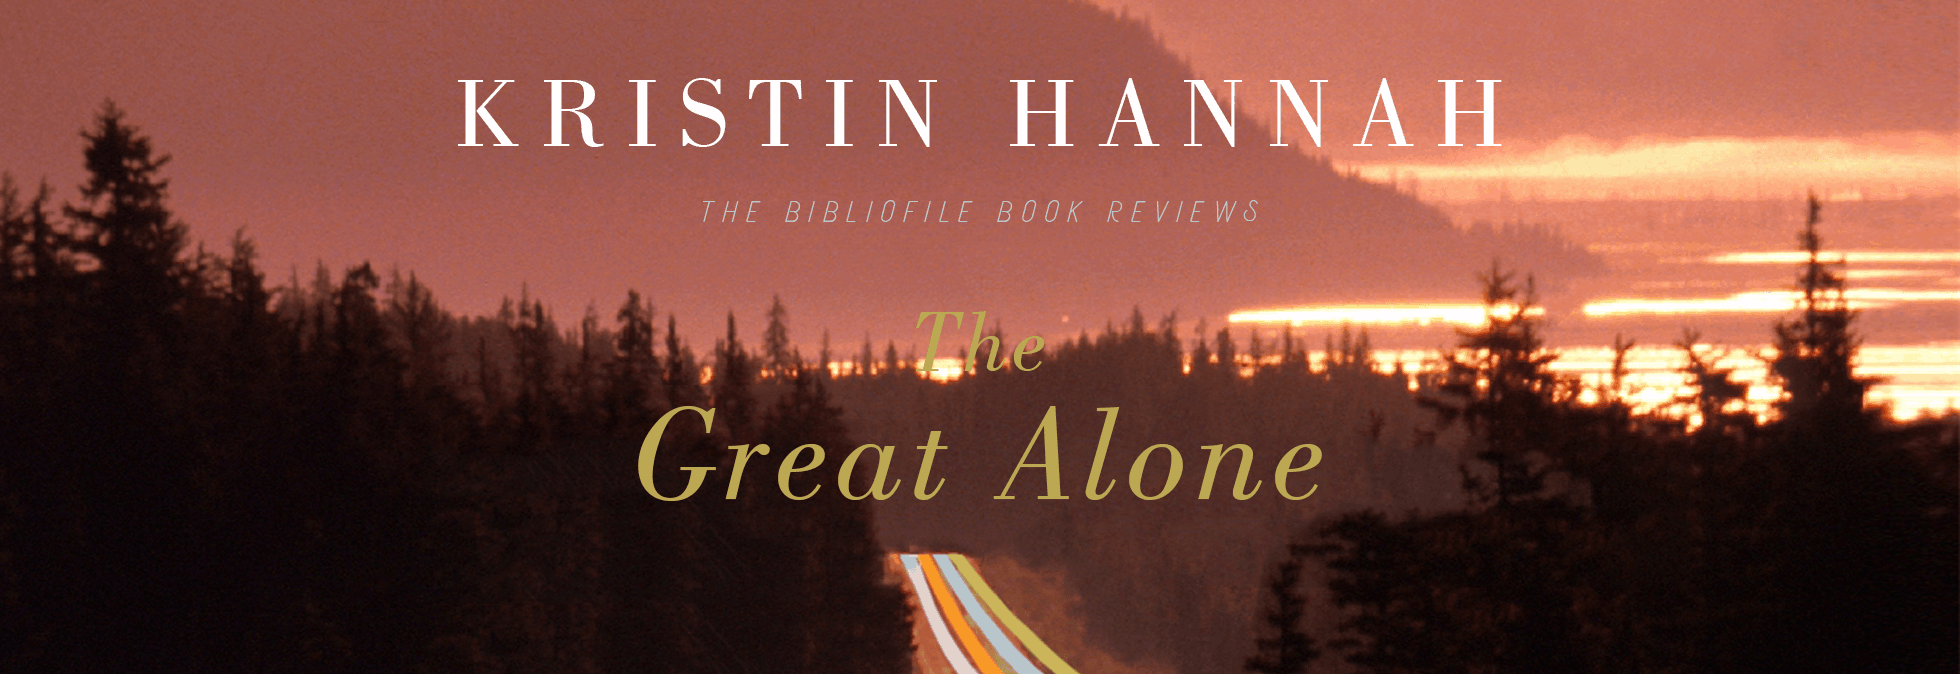 the great alone summary review kristin hannah